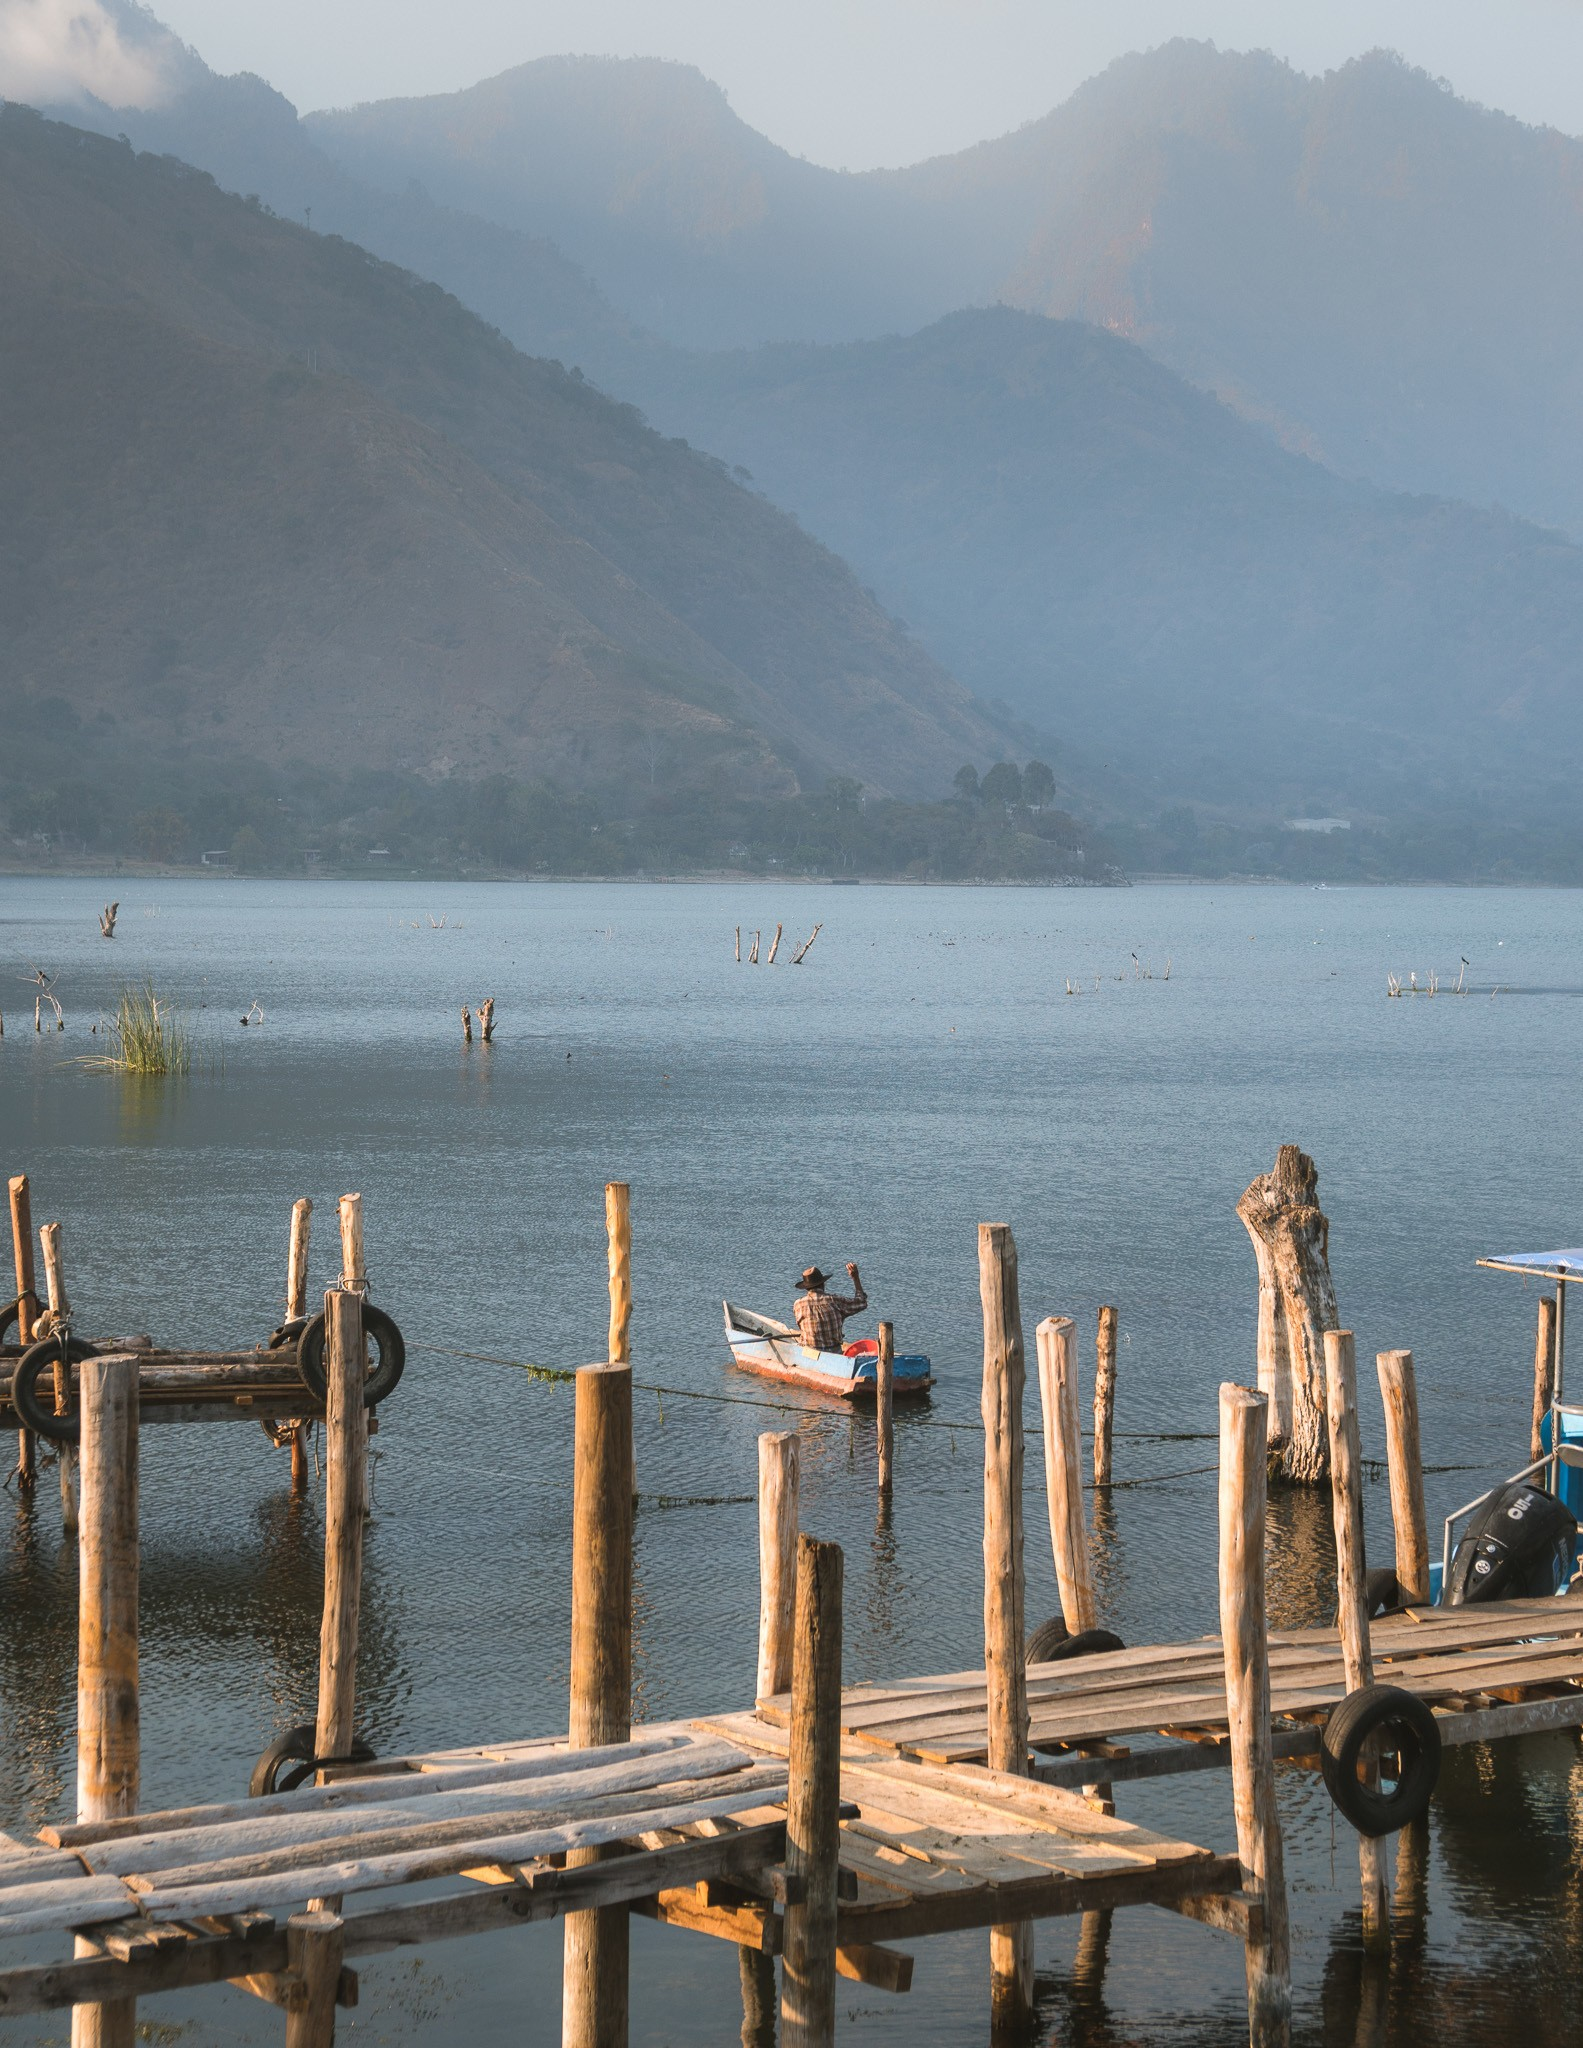 visiting Lake Atitlan in Guatemala